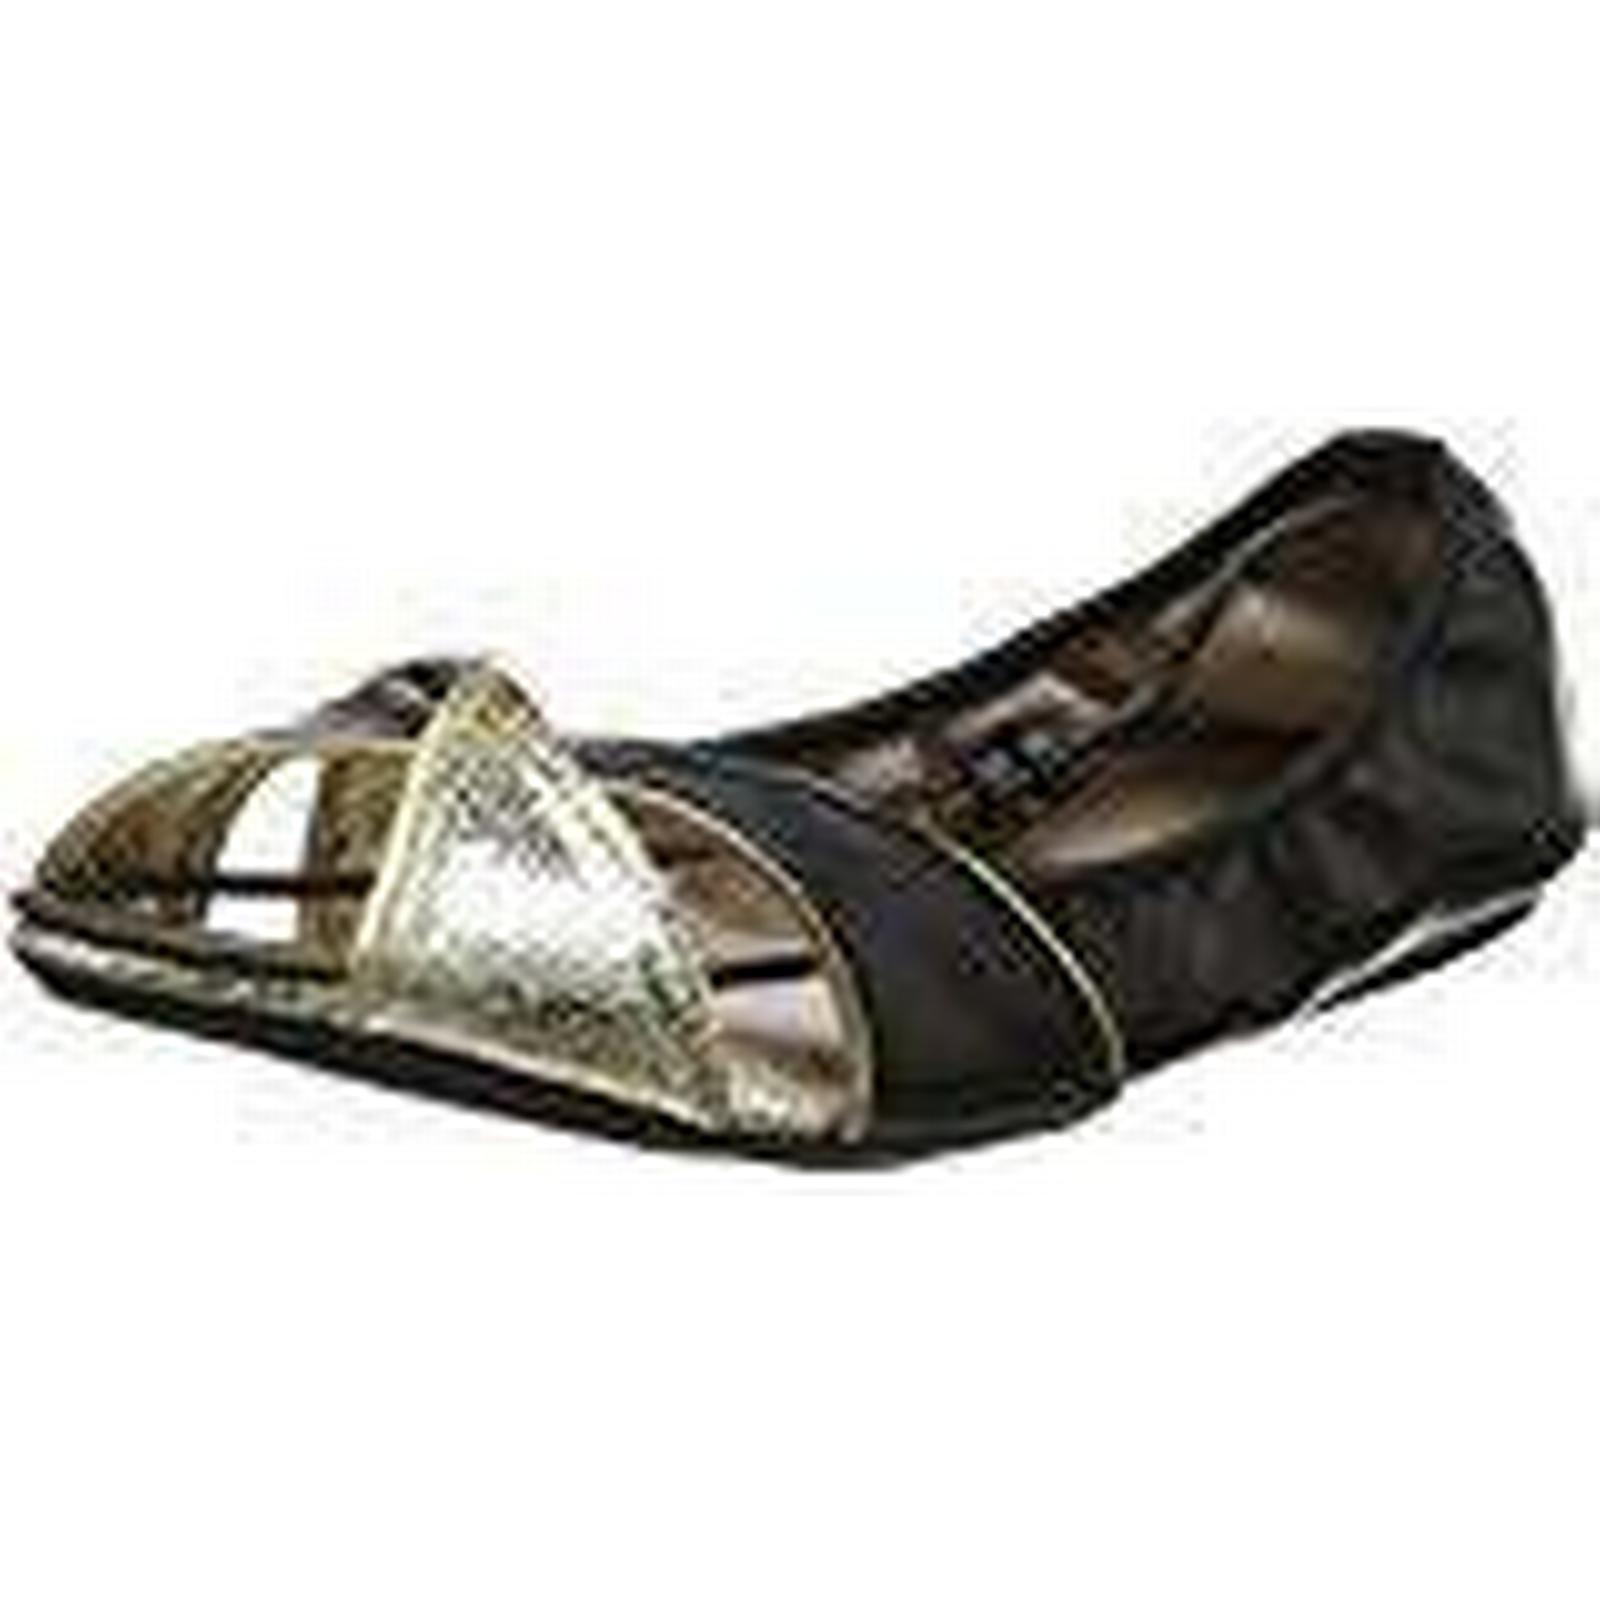 Butterfly Twists Women's Amelia Open Toe Ballet Flats, EU (Black), 7 UK 40 EU Flats, fce494